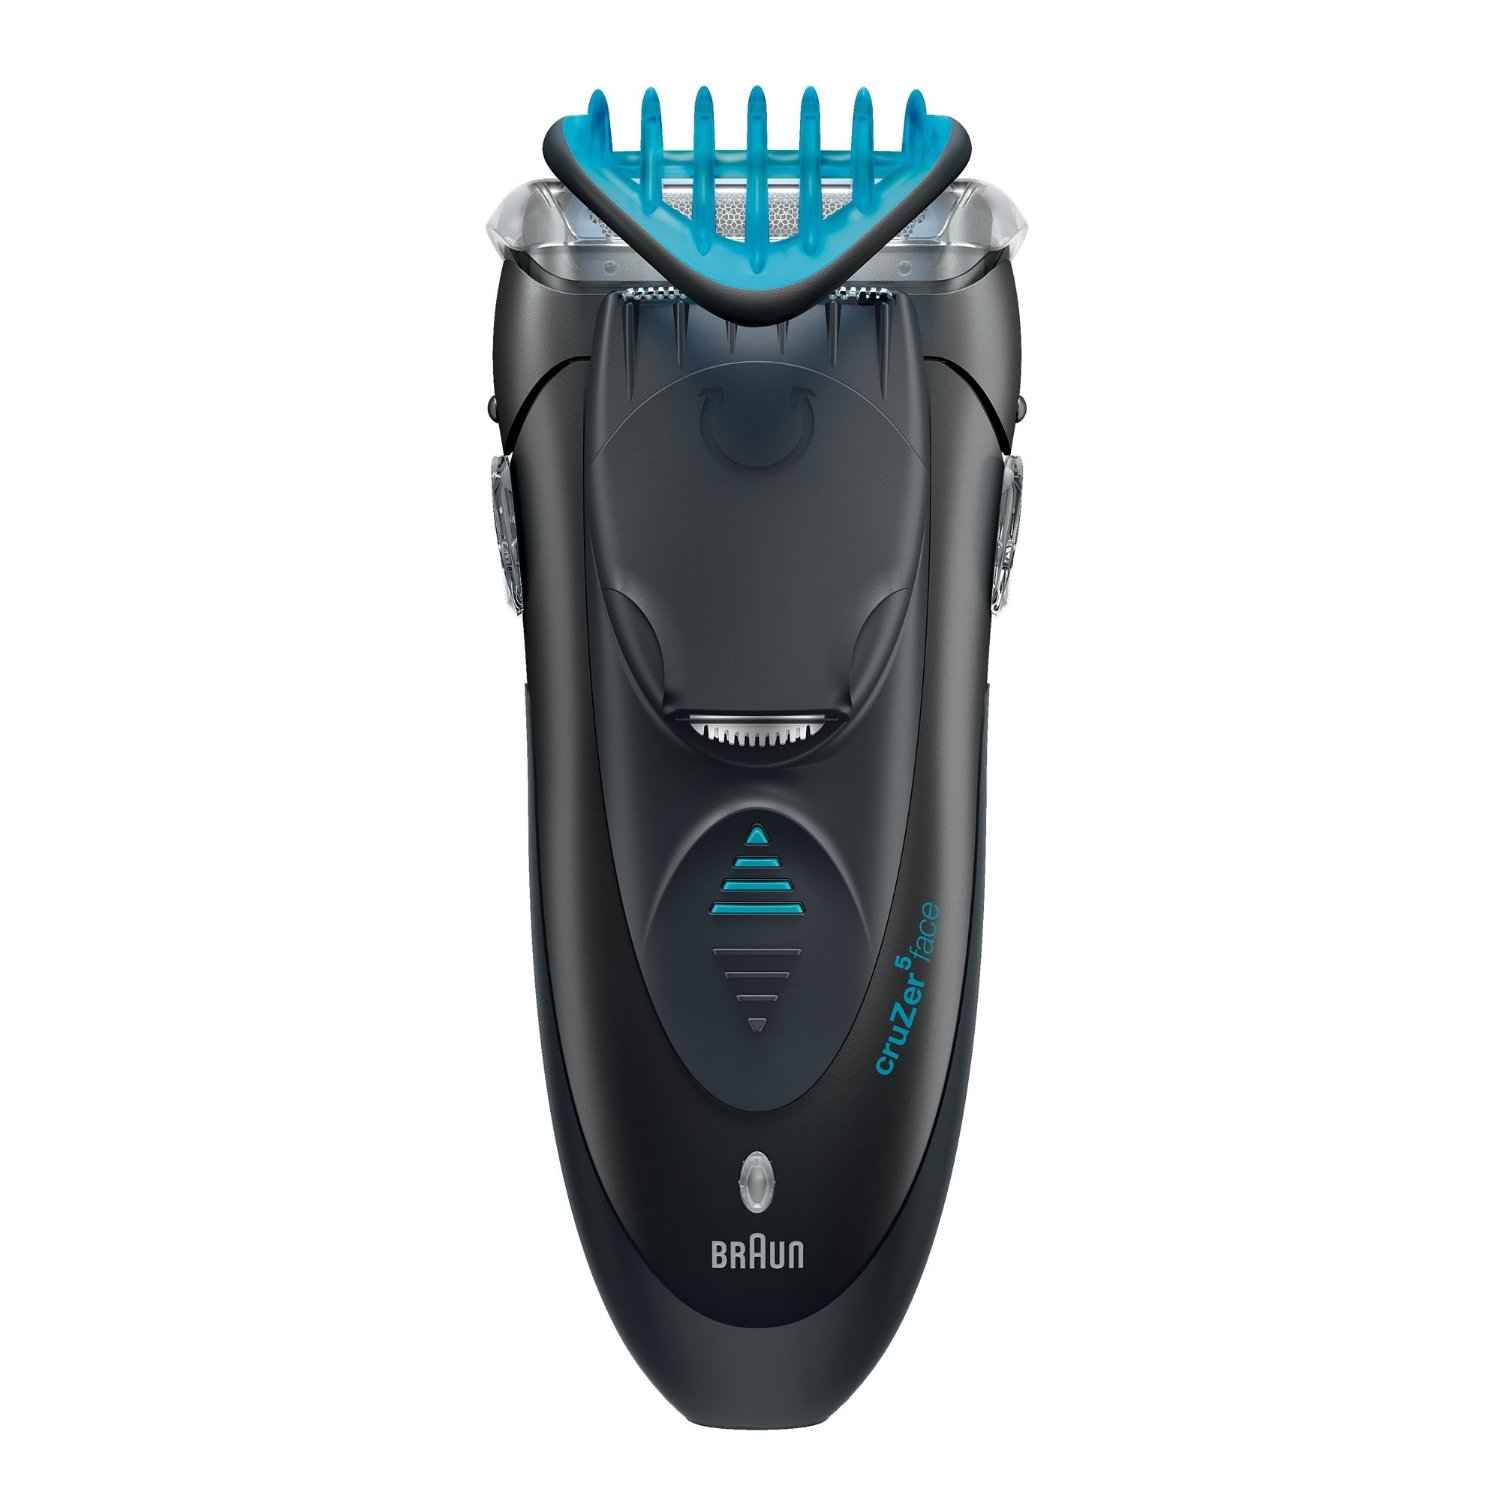 BRAUN cruZer5 Face Shaver   Xcite Alghanim Electronics - Best online shopping experience in Kuwait